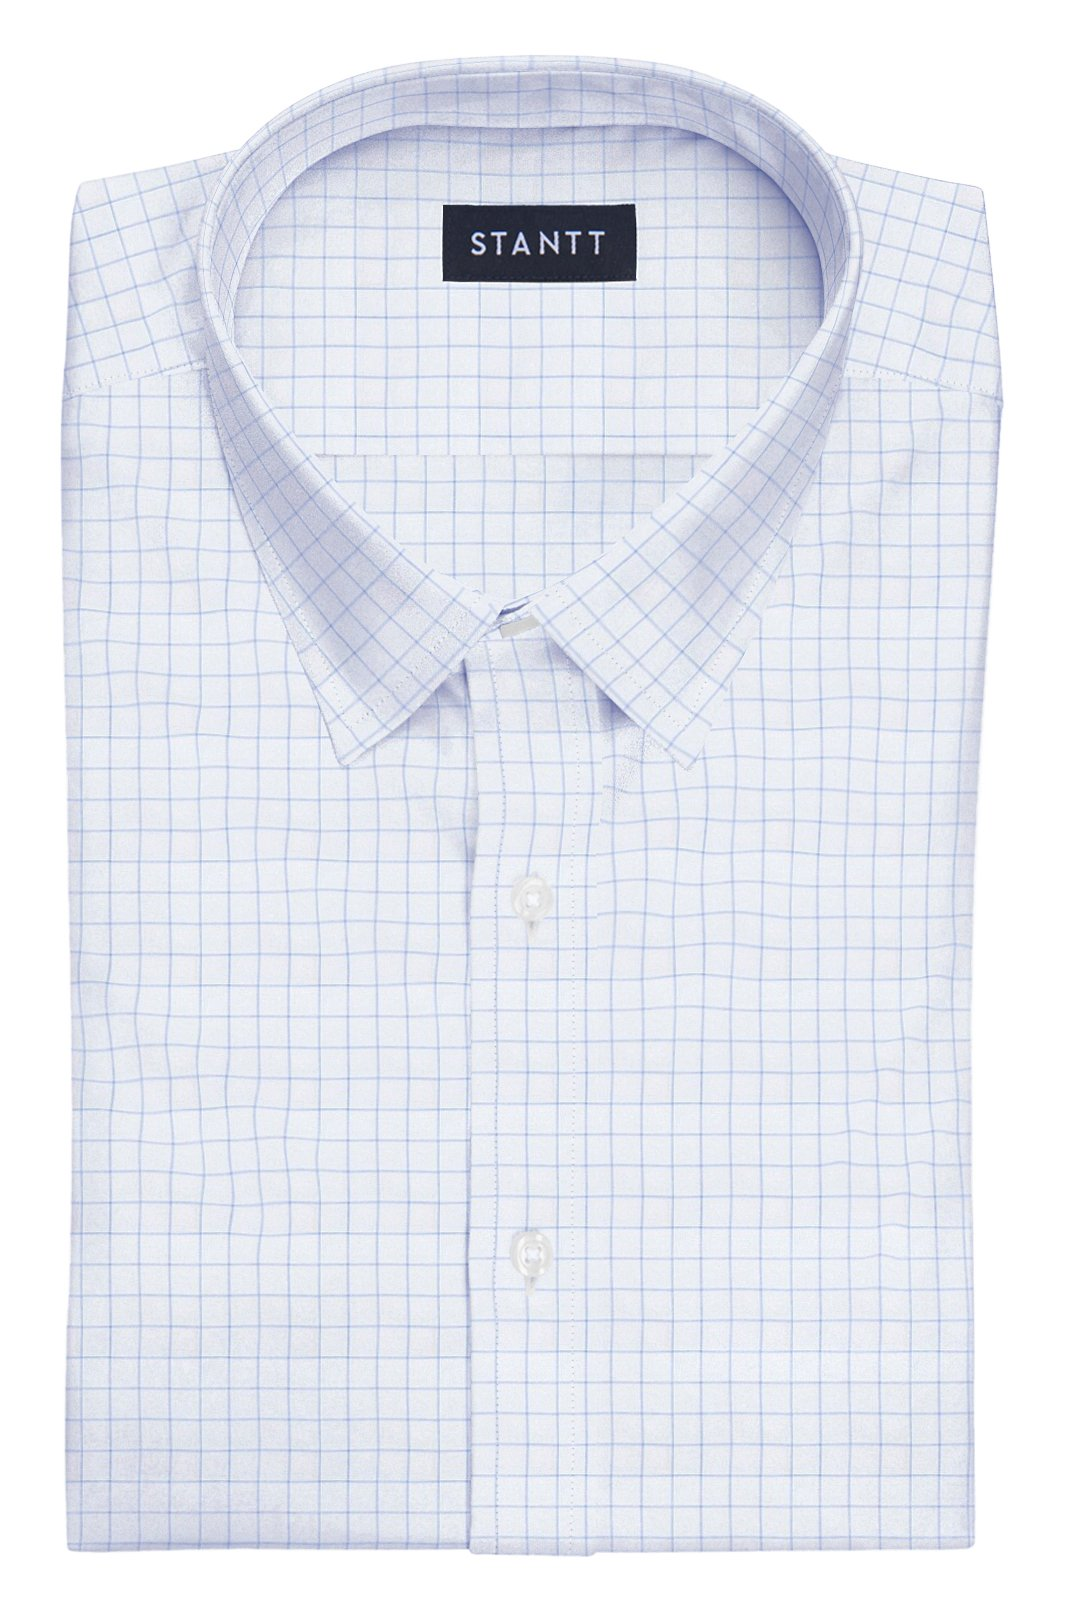 Blue Hairline Windowpane: Semi-Spread Collar, French Cuff